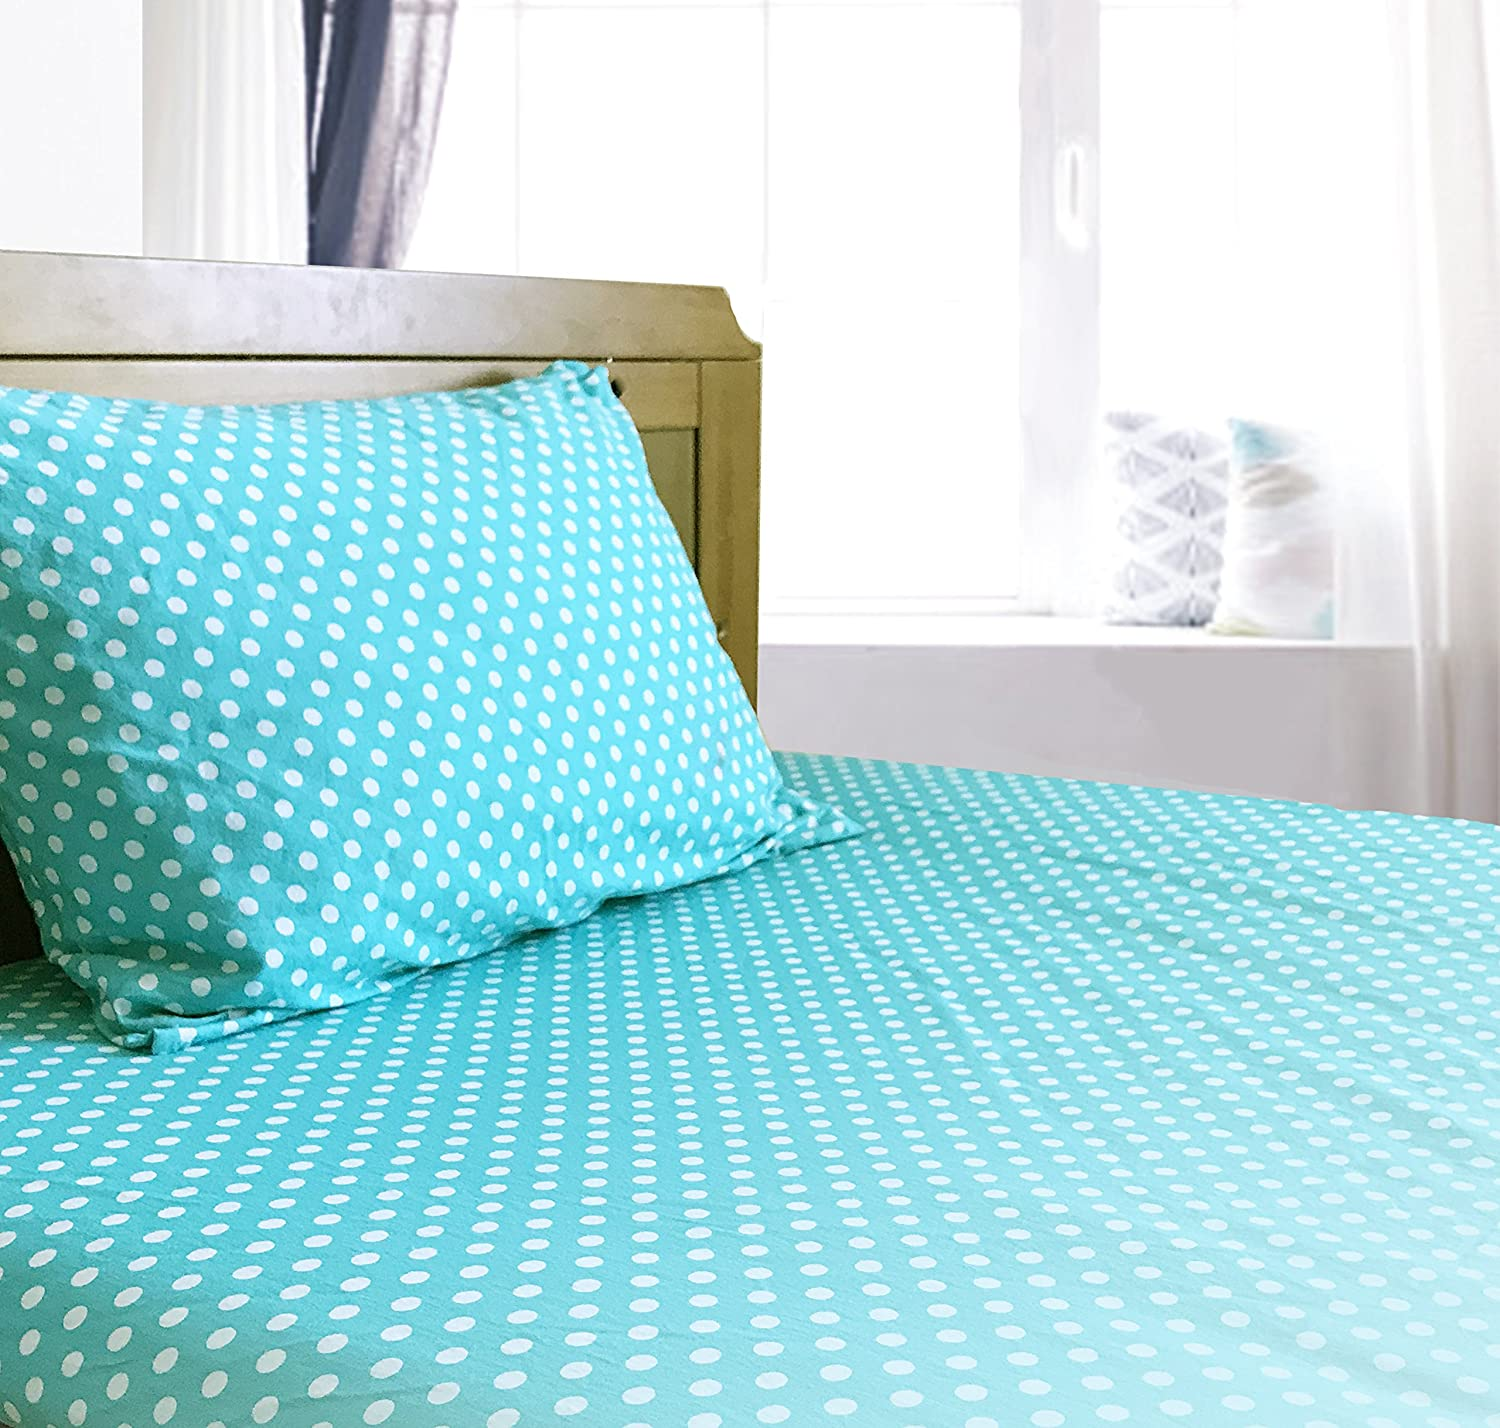 Crib/Toddler Bed Sheet and Pillowcase Set (Turquoise Polka Dot) 100% Premium Cotton by Dreamtown Kids